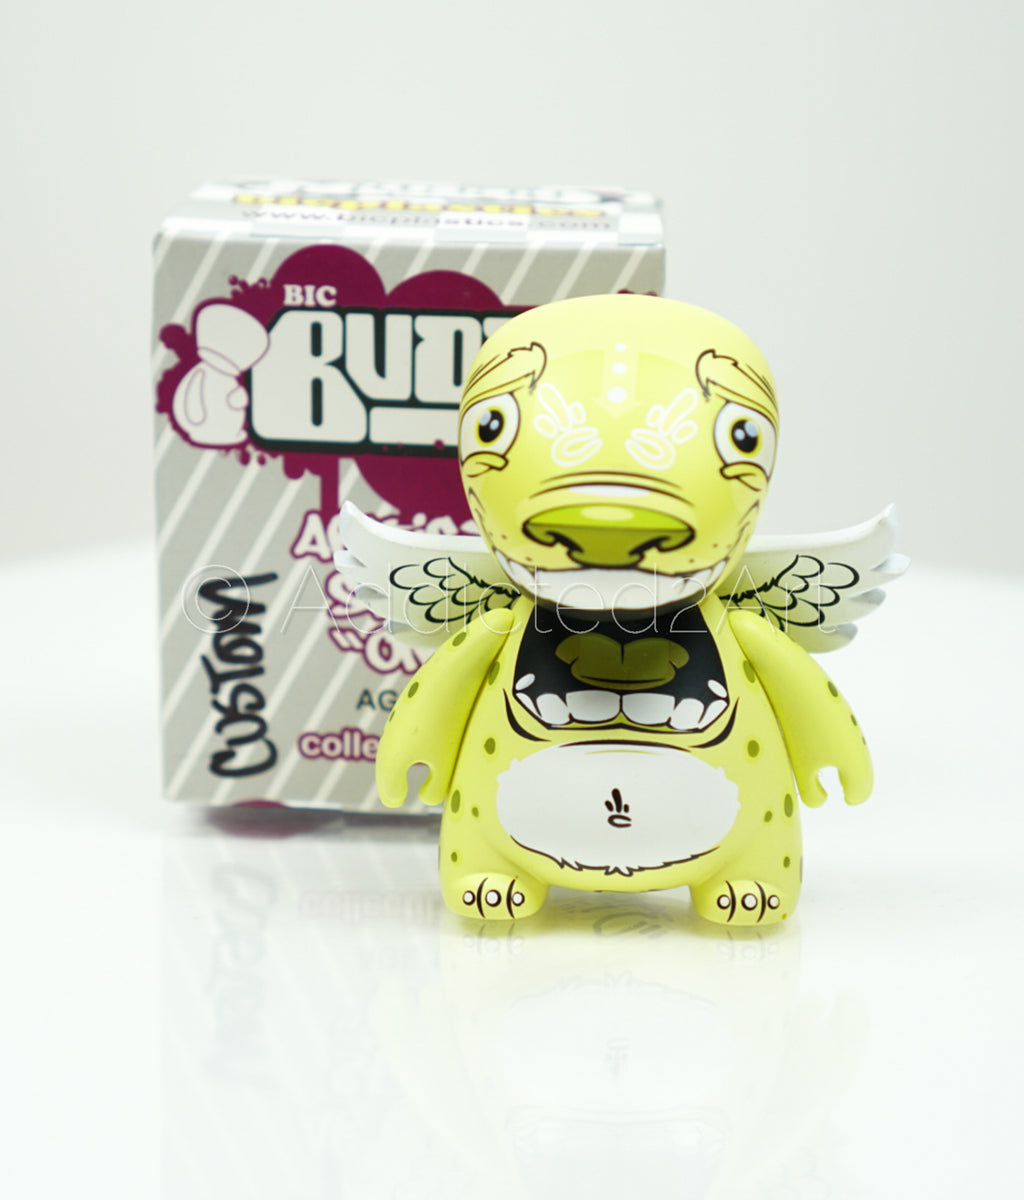 "3"" Bic Buddy (Series 1) Signed Artist Proof by Scribe x BIC PLASTICS"